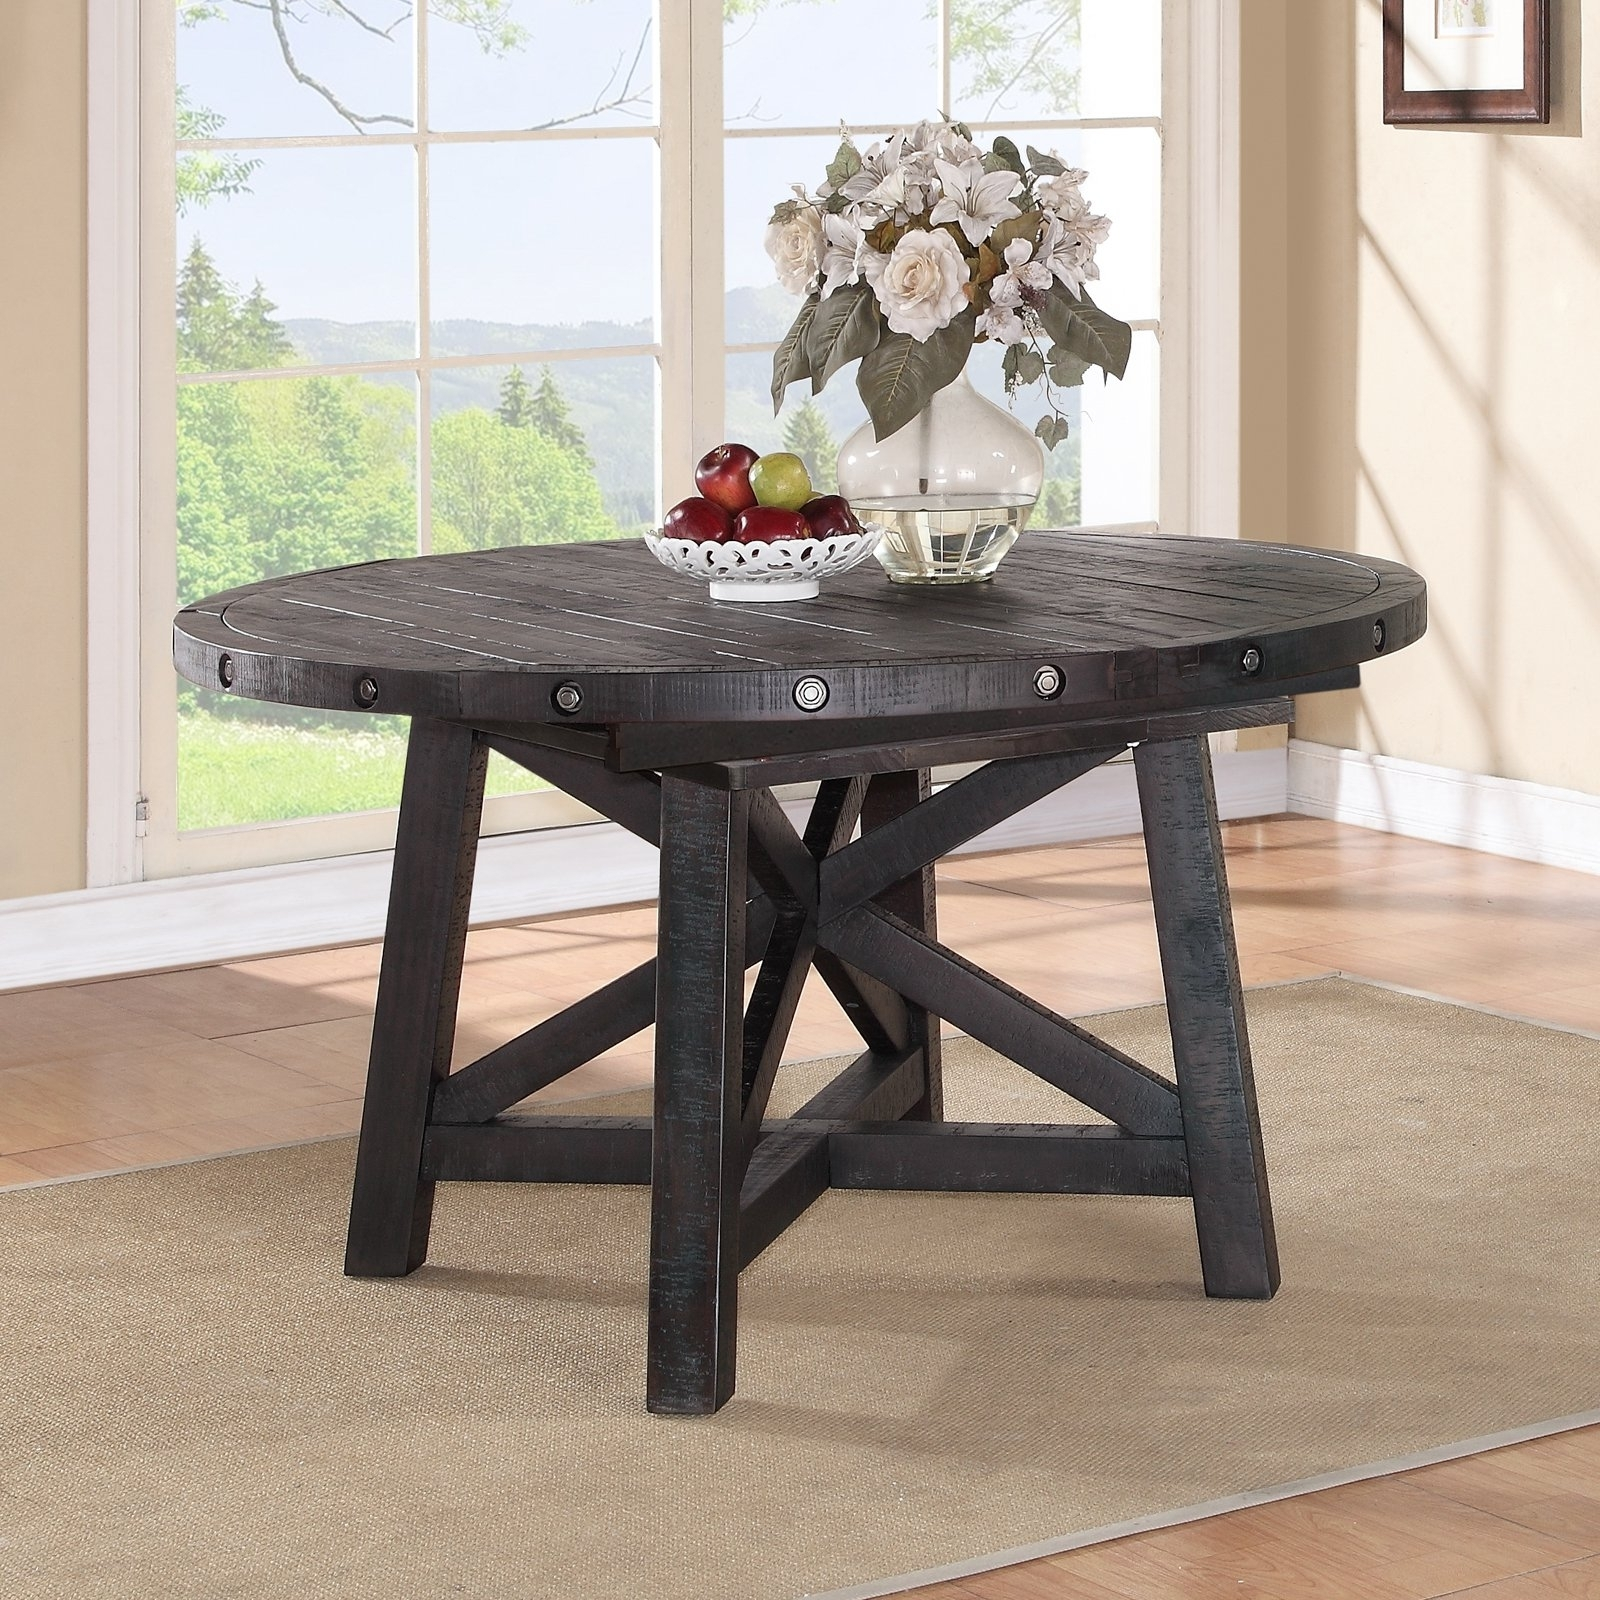 Modus Yosemite Solid Wood Round Extension Table – Cafe | Hayneedle Regarding Newest Lassen Extension Rectangle Dining Tables (View 8 of 20)